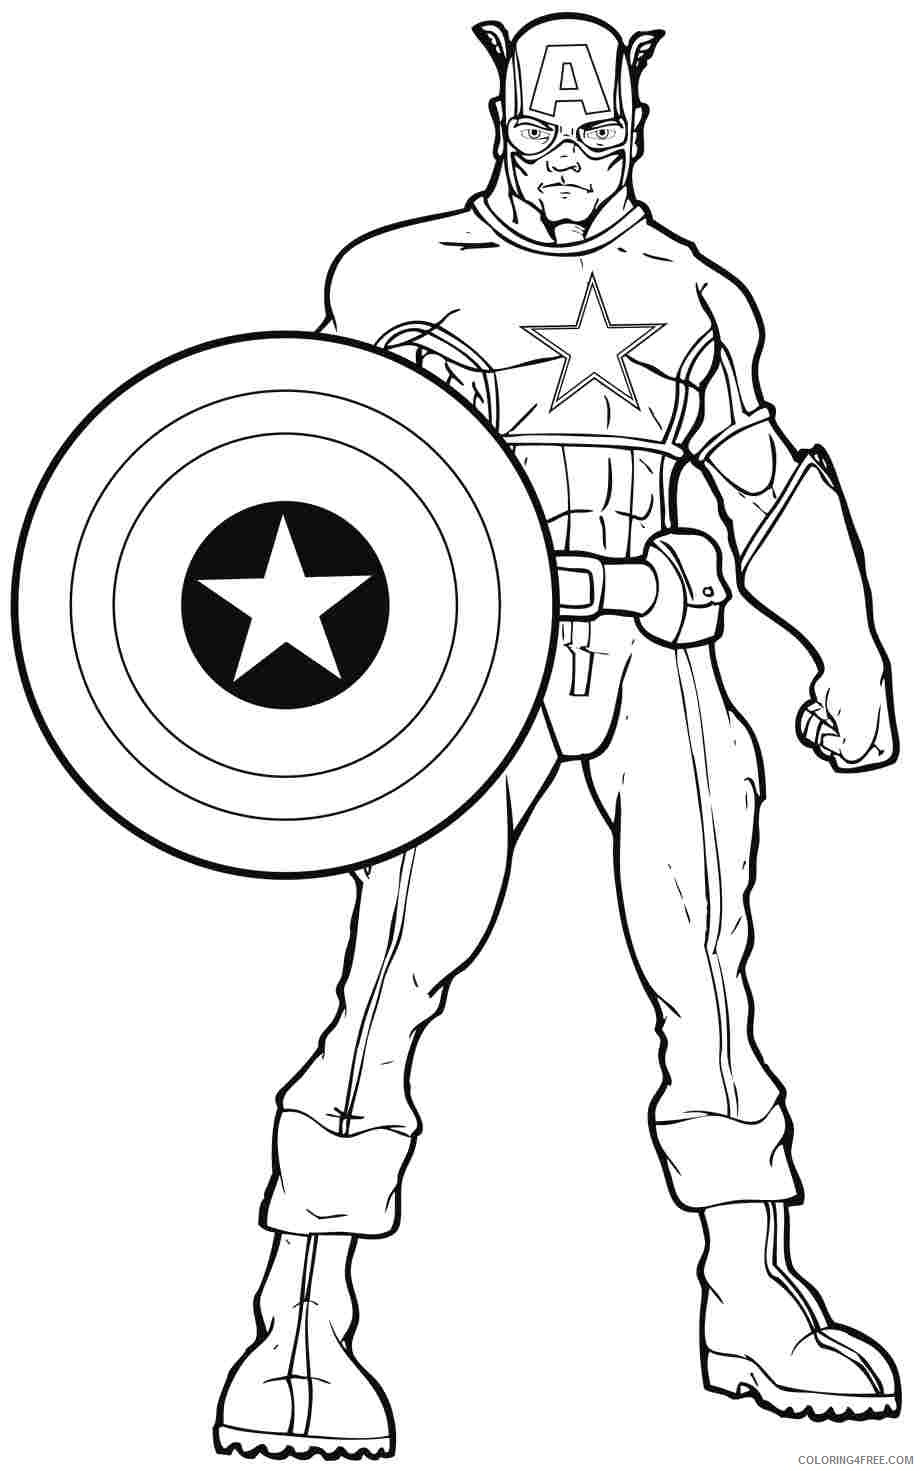 Marvel Superhero Coloring Pages Coloring4free Coloring4free Com